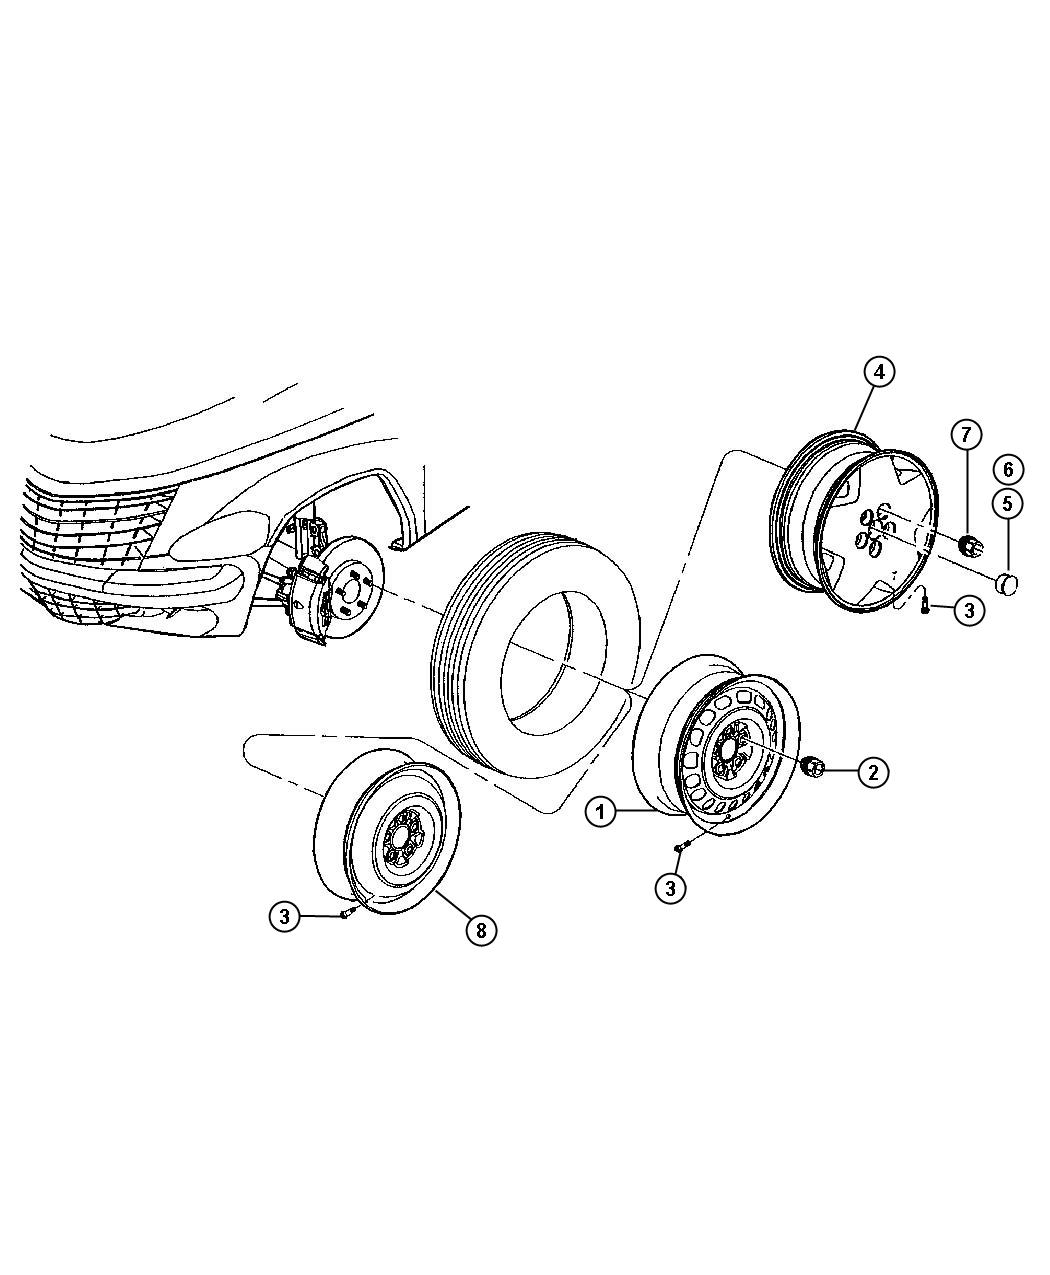 Diagram Wheels and Related Parts. for your Chrysler